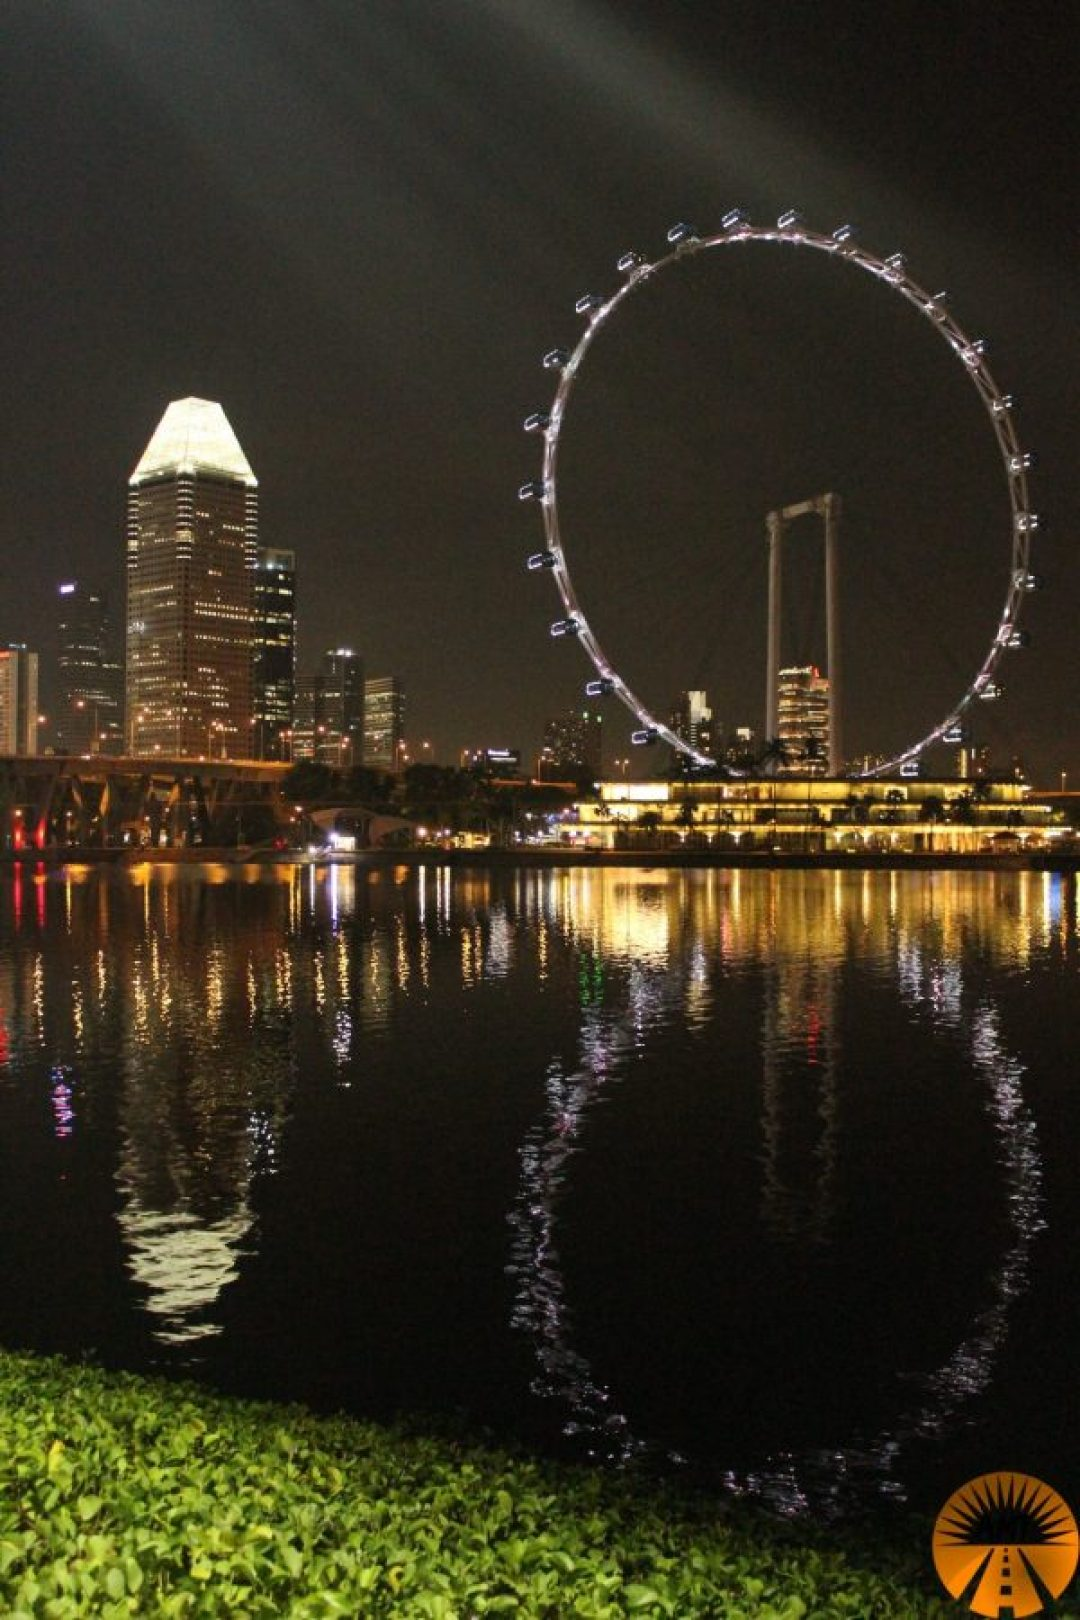 View on the ferris wheel, Singapore